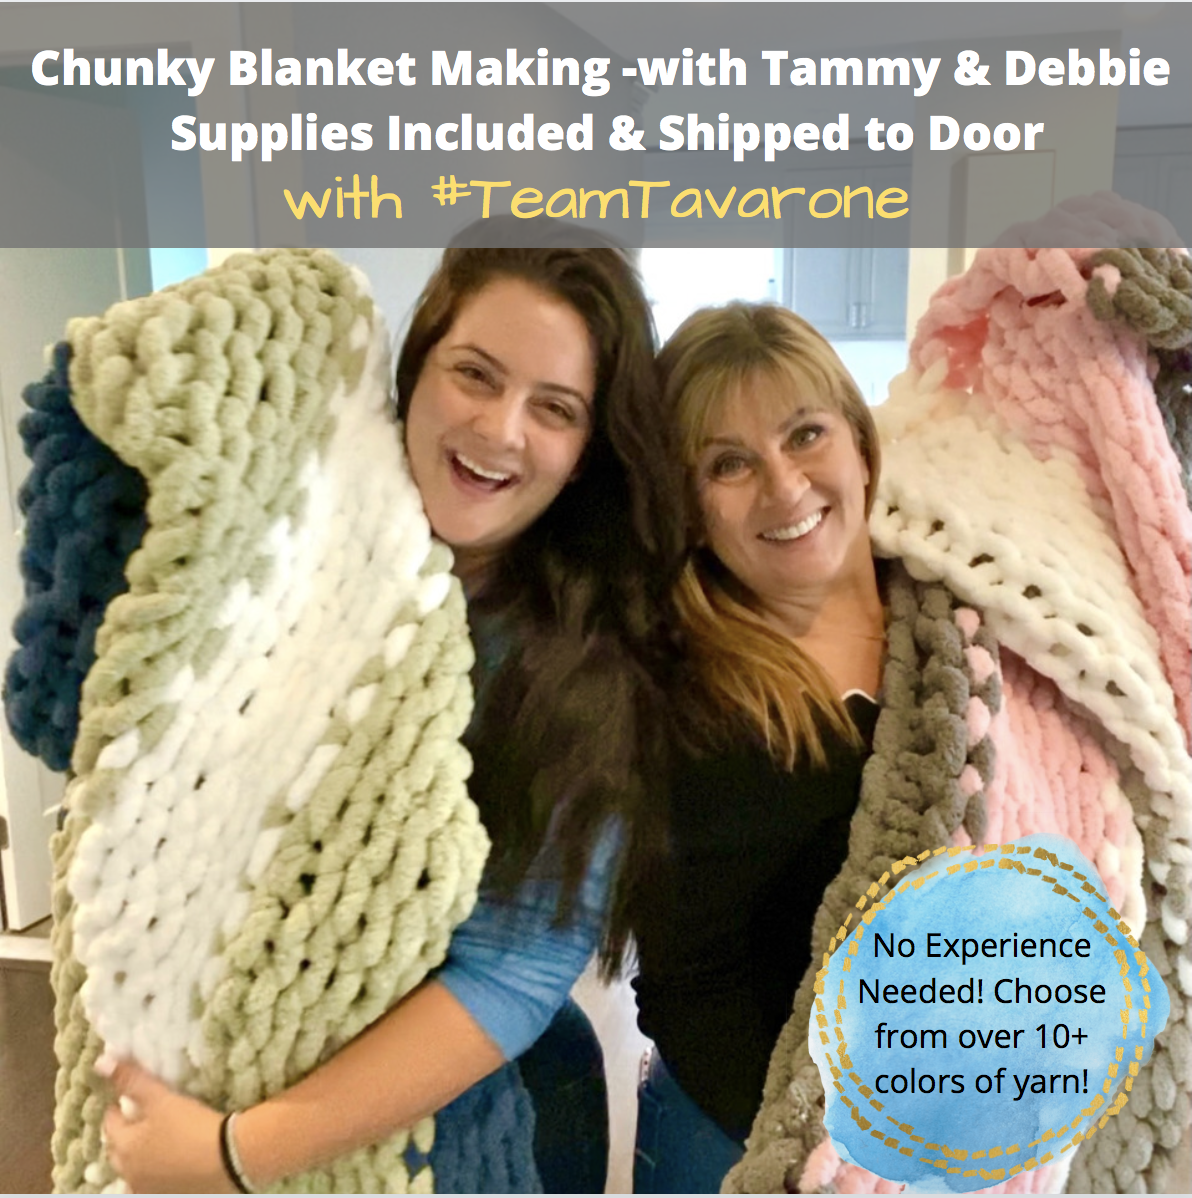 A Virtual Chunky Blanket Making with Tammy  Debbie experience project by Yaymaker